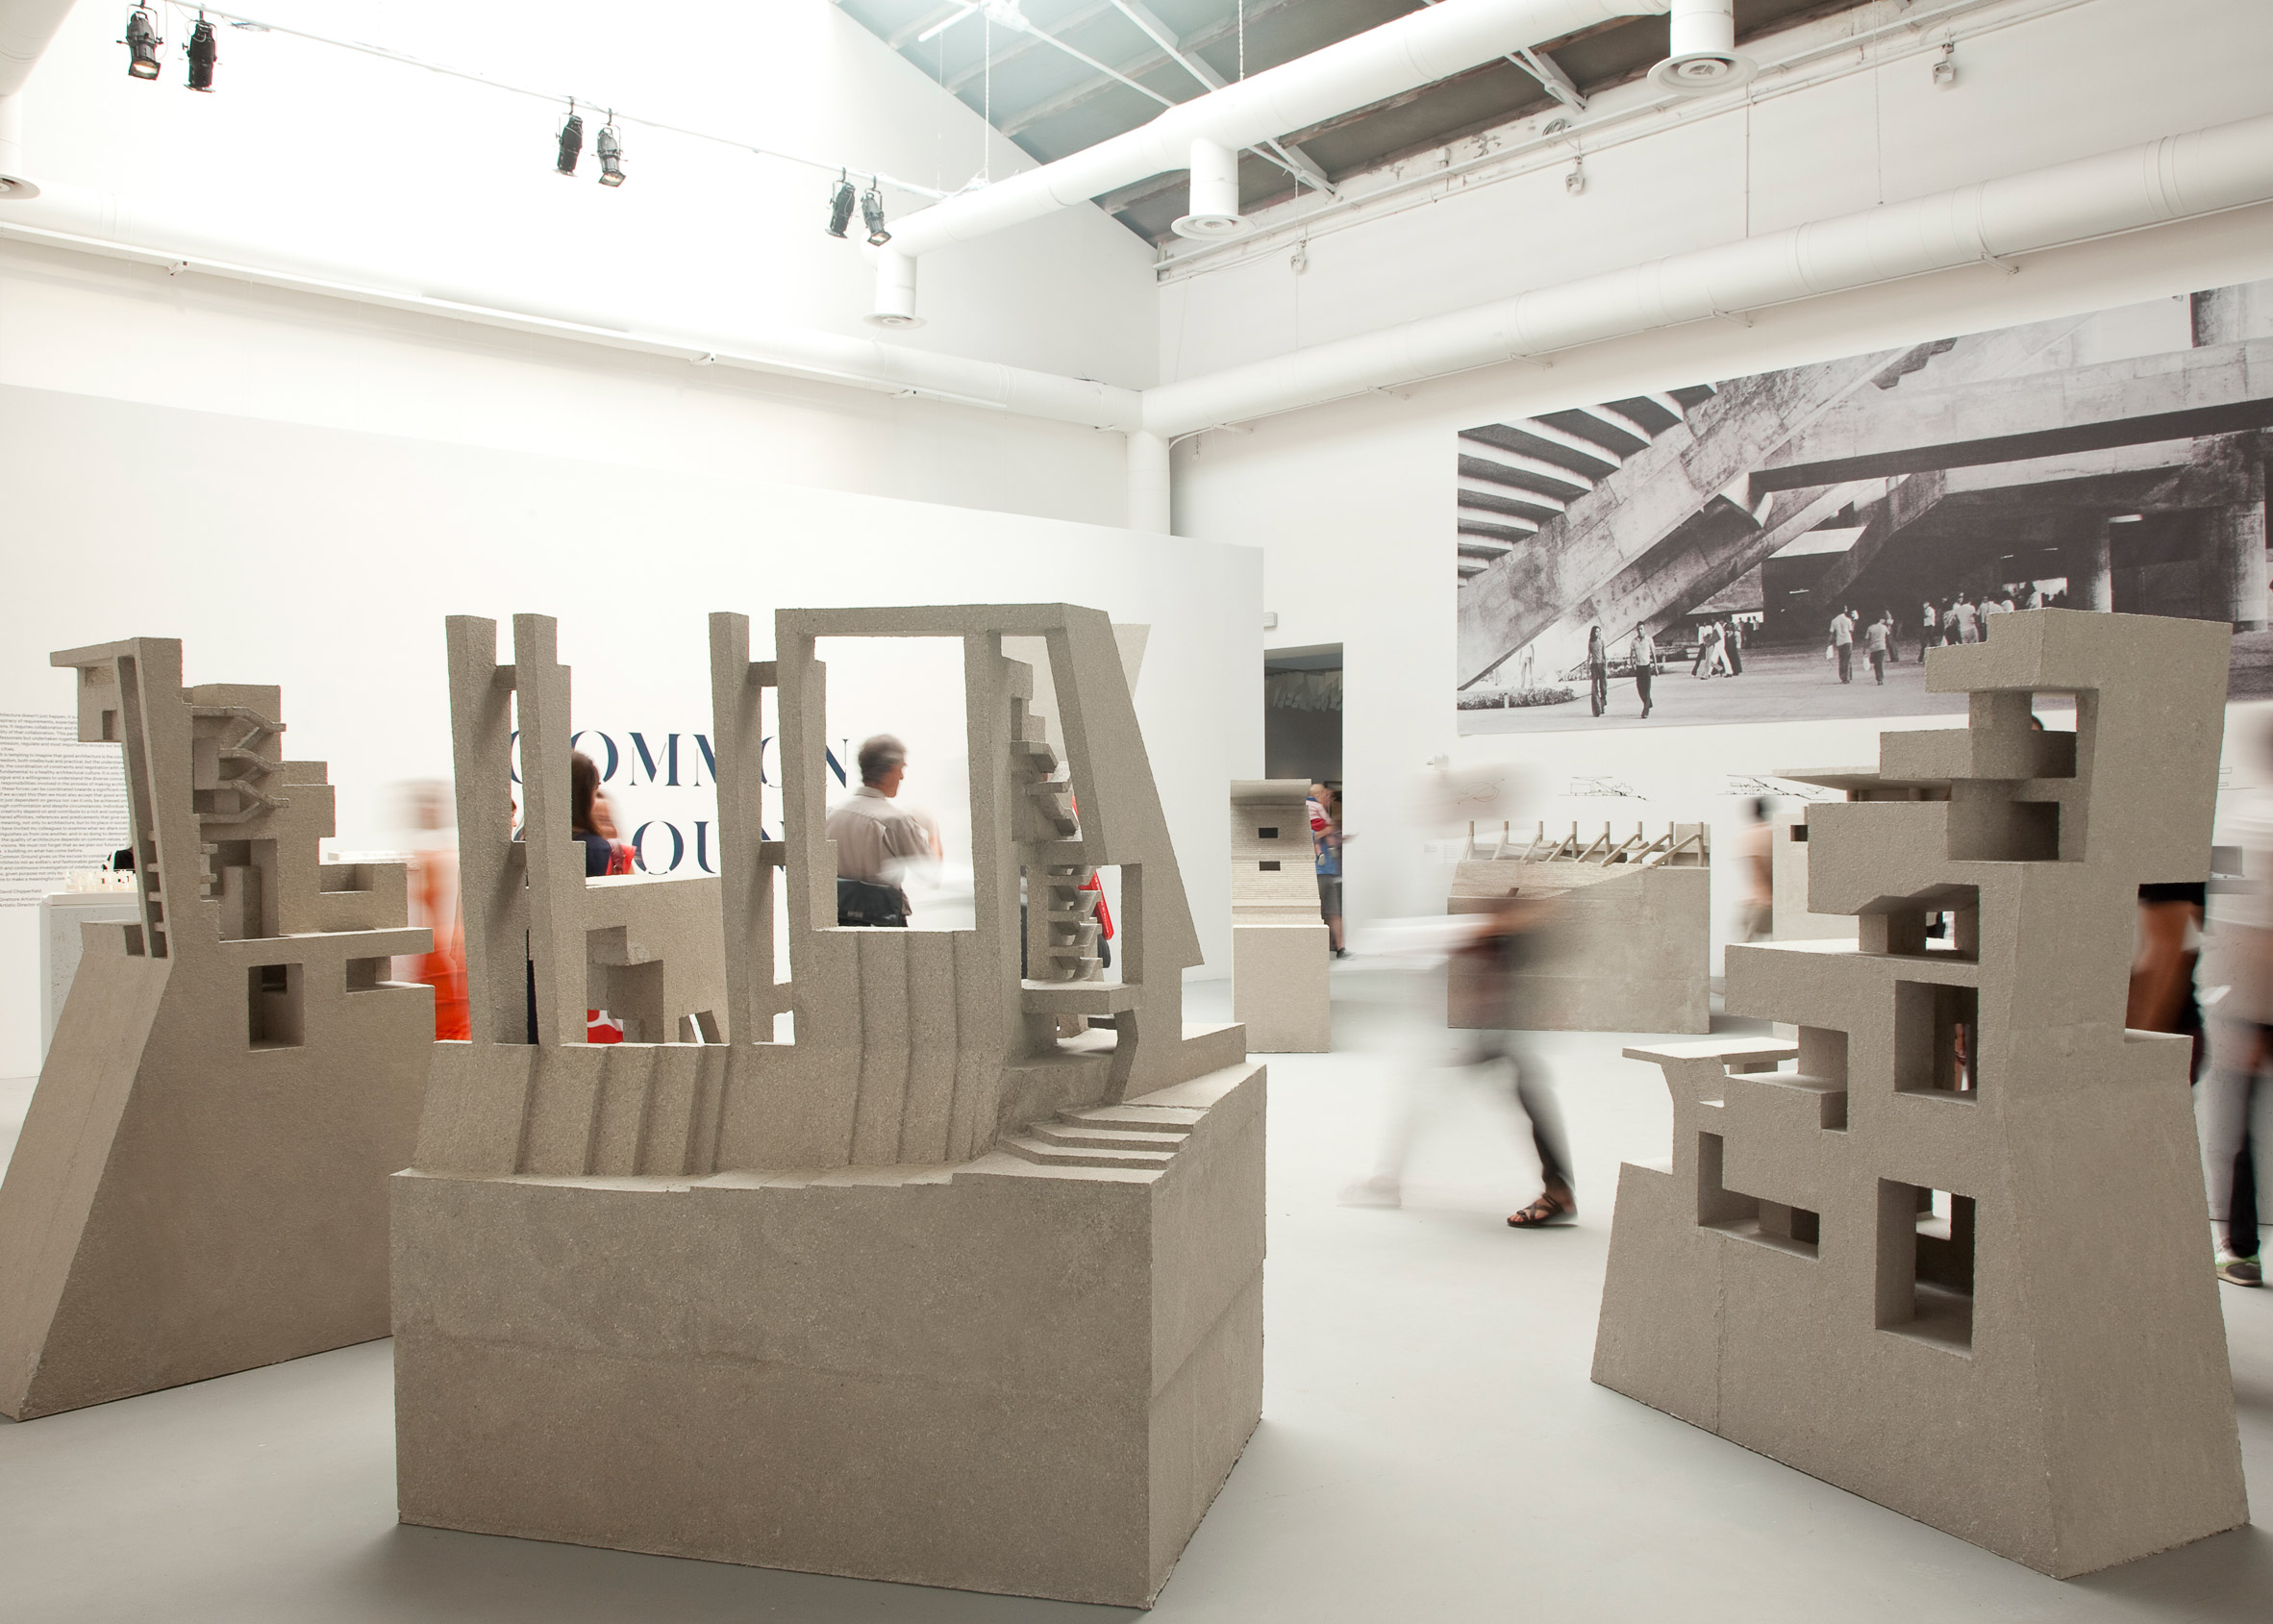 Architecture as New Geography, Venice Architecture Biennale, 2012